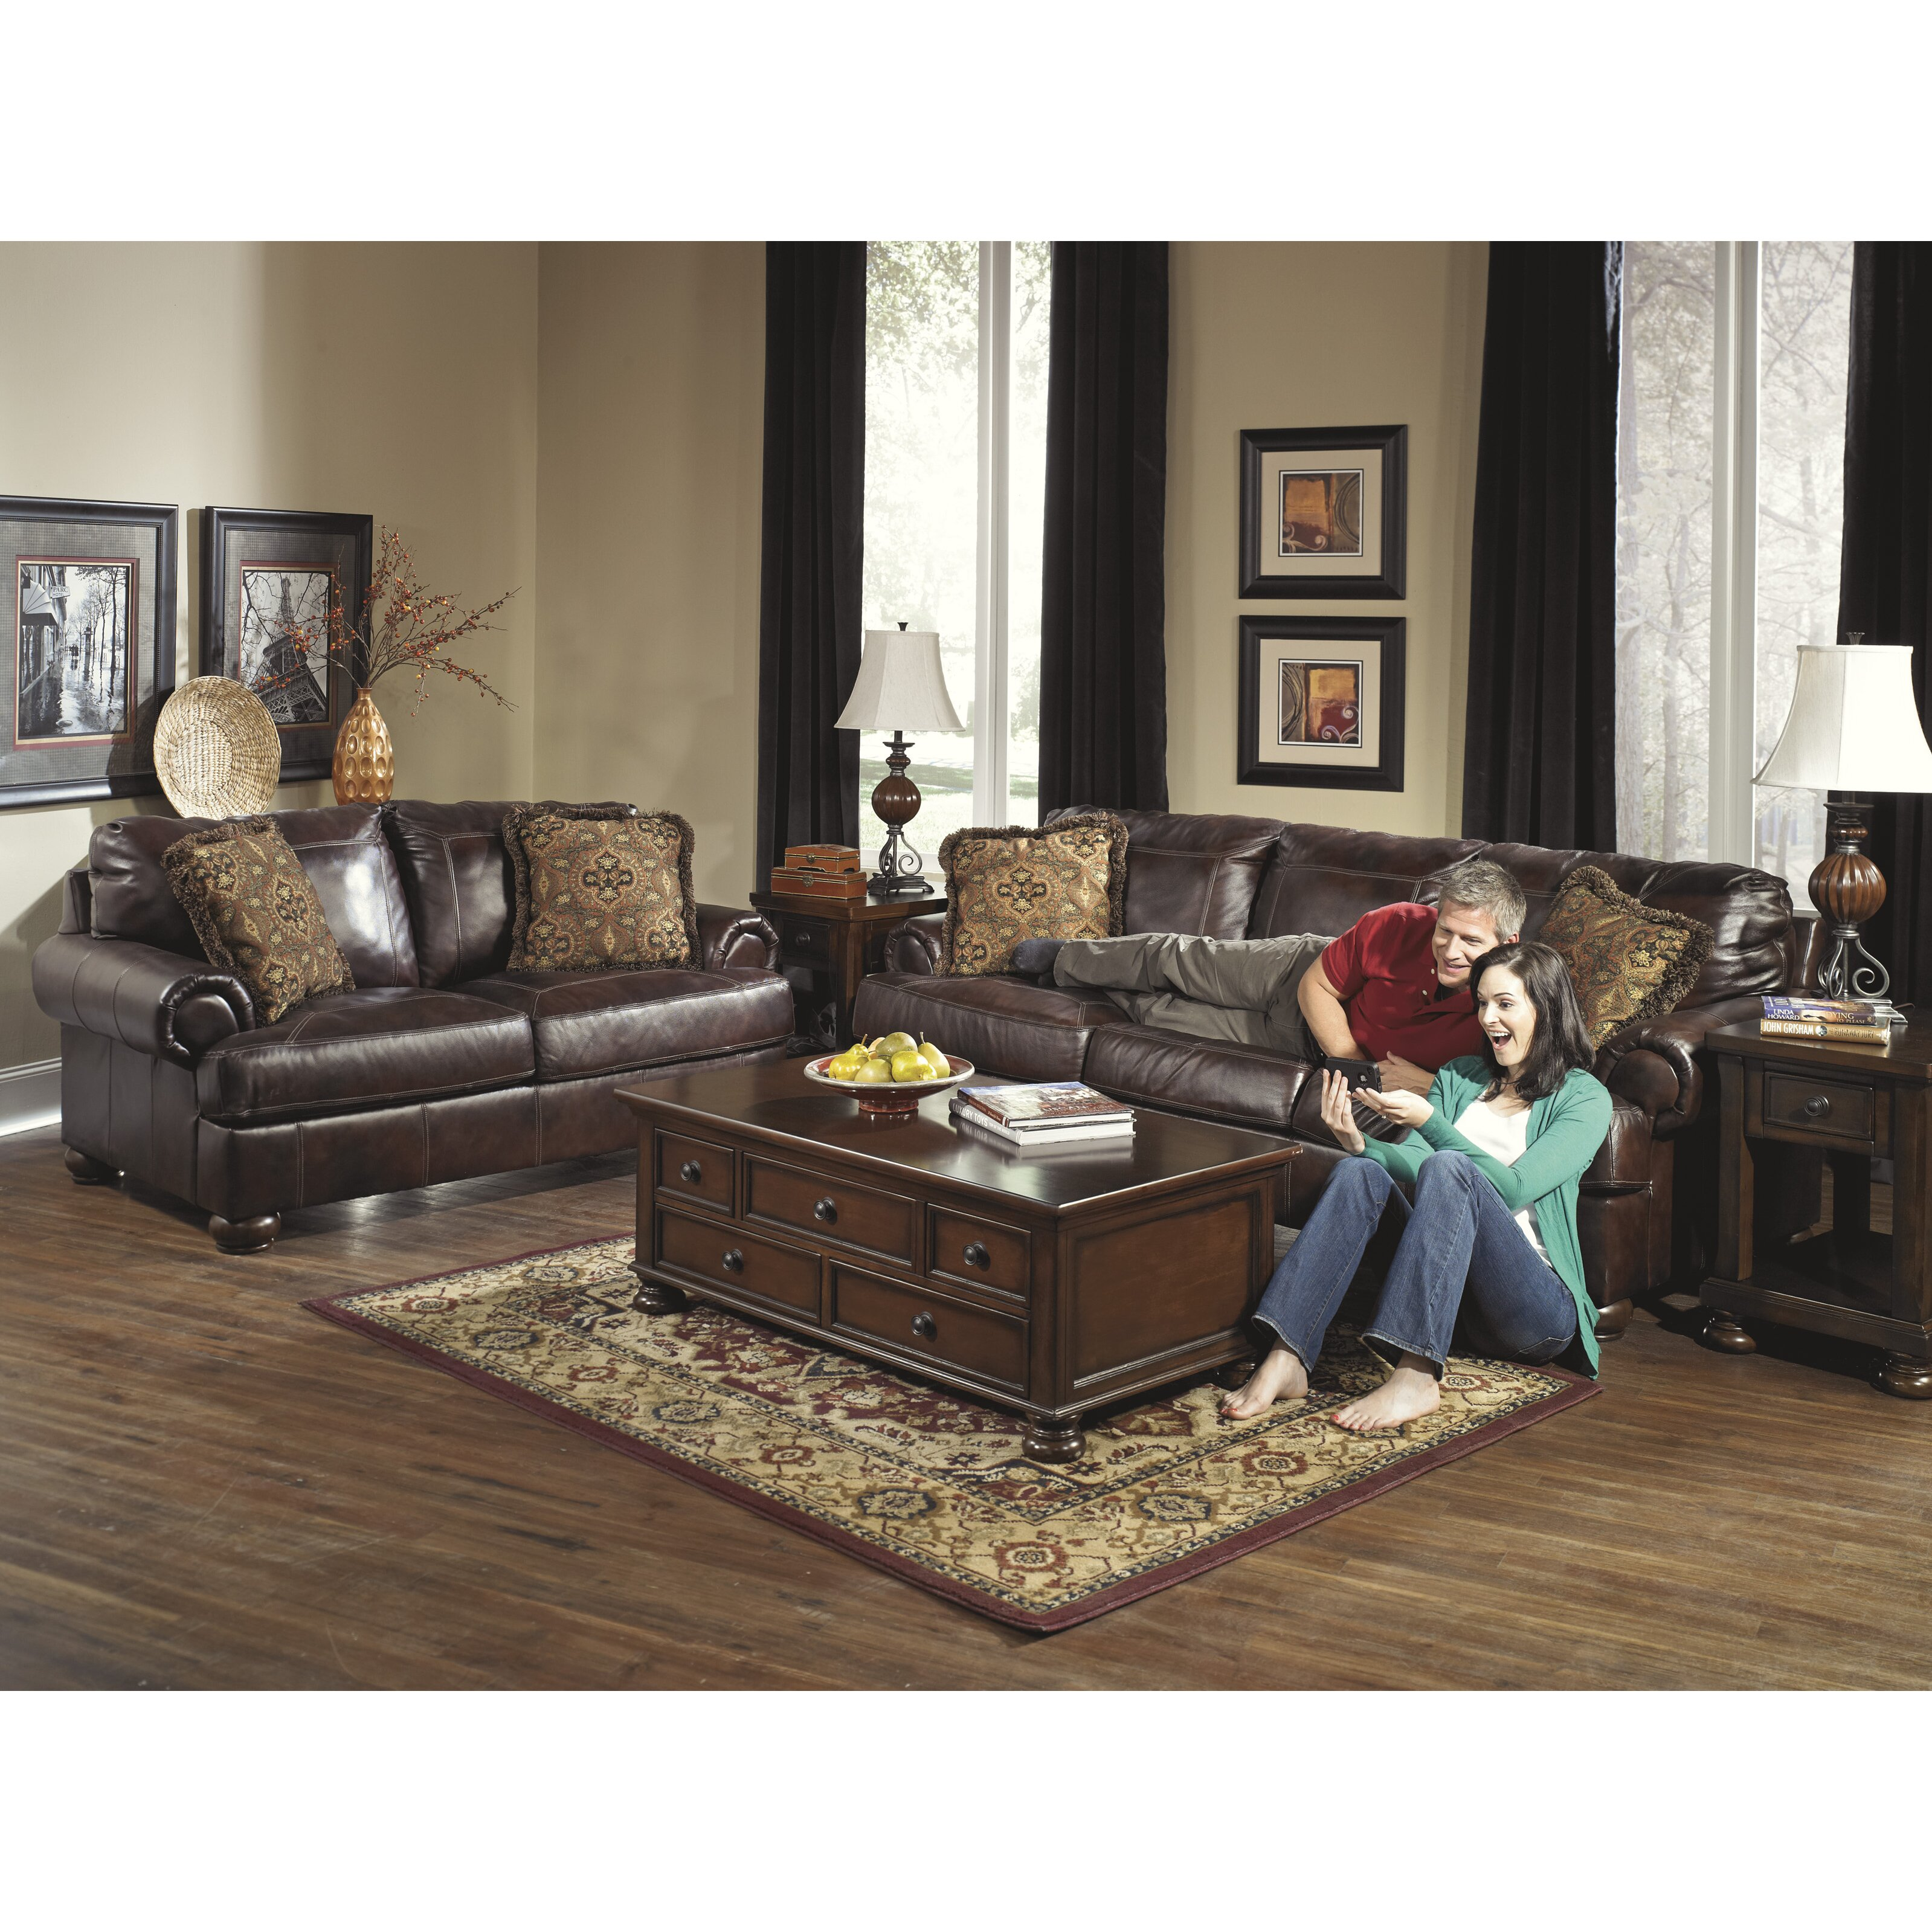 Leather Furniture Living Room Darby Home Co Bannister Leather Sofa Reviews Wayfair